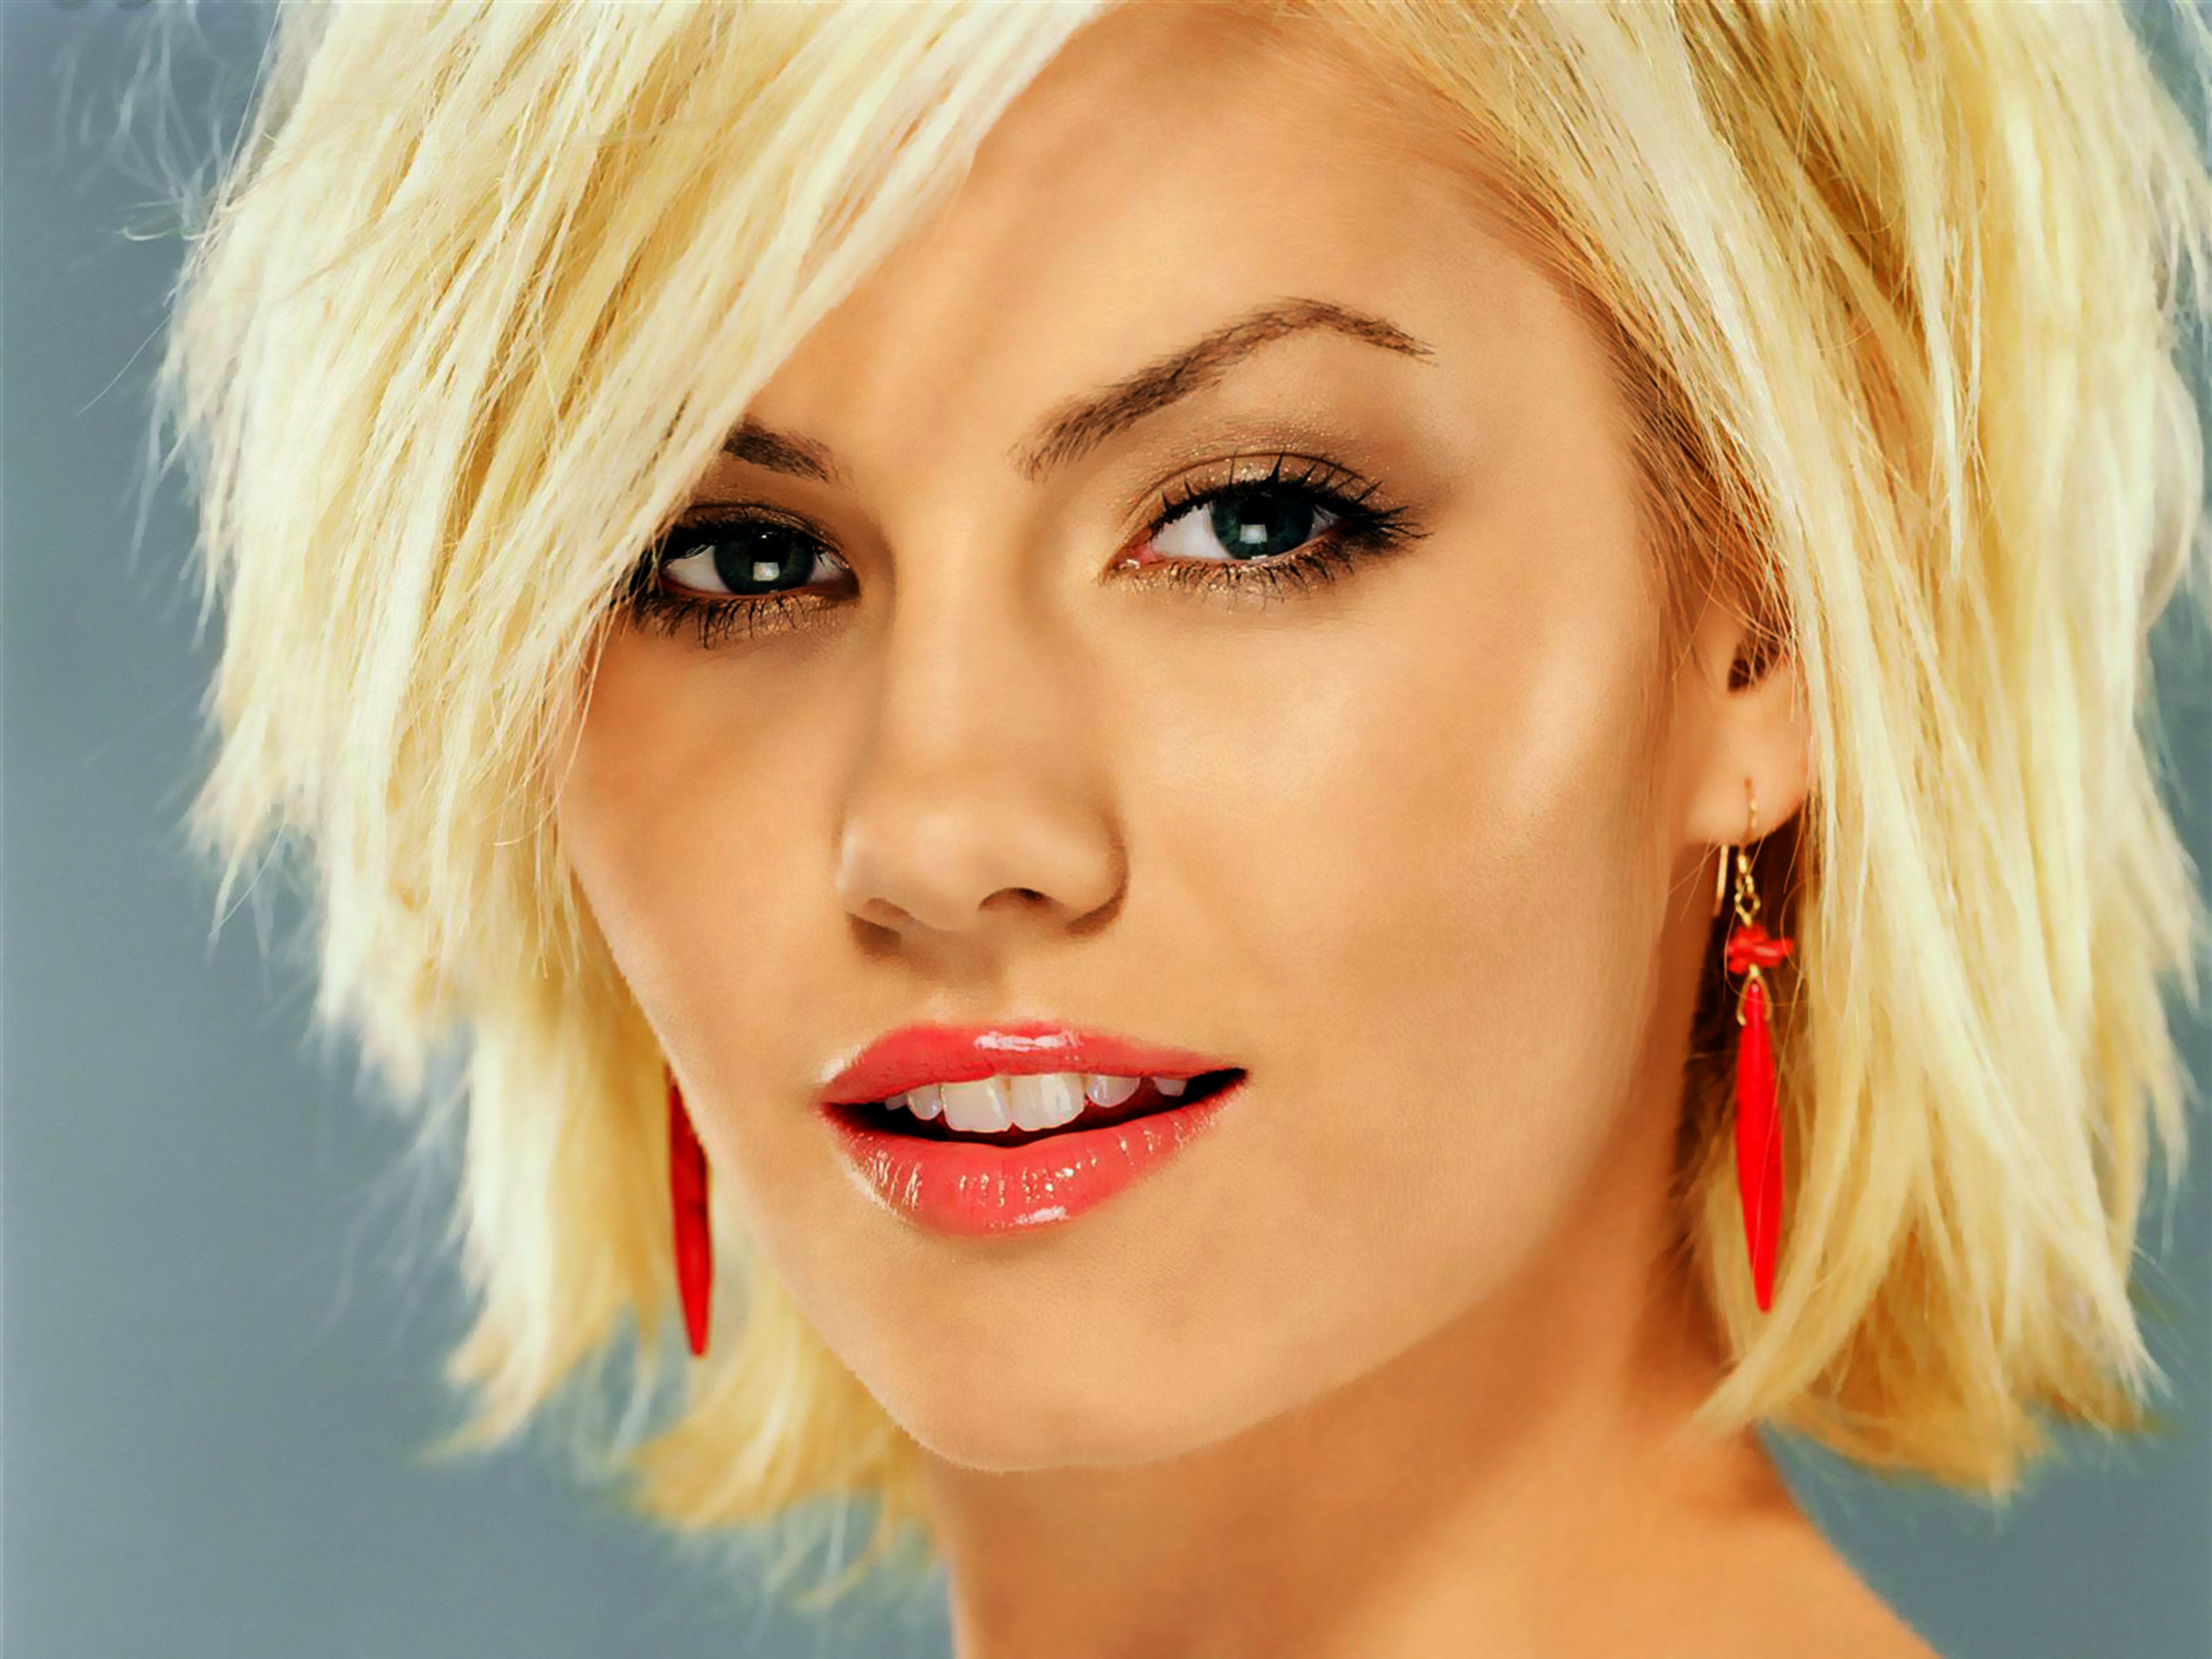 free nice elisha cuthbert wallpaper for mobile